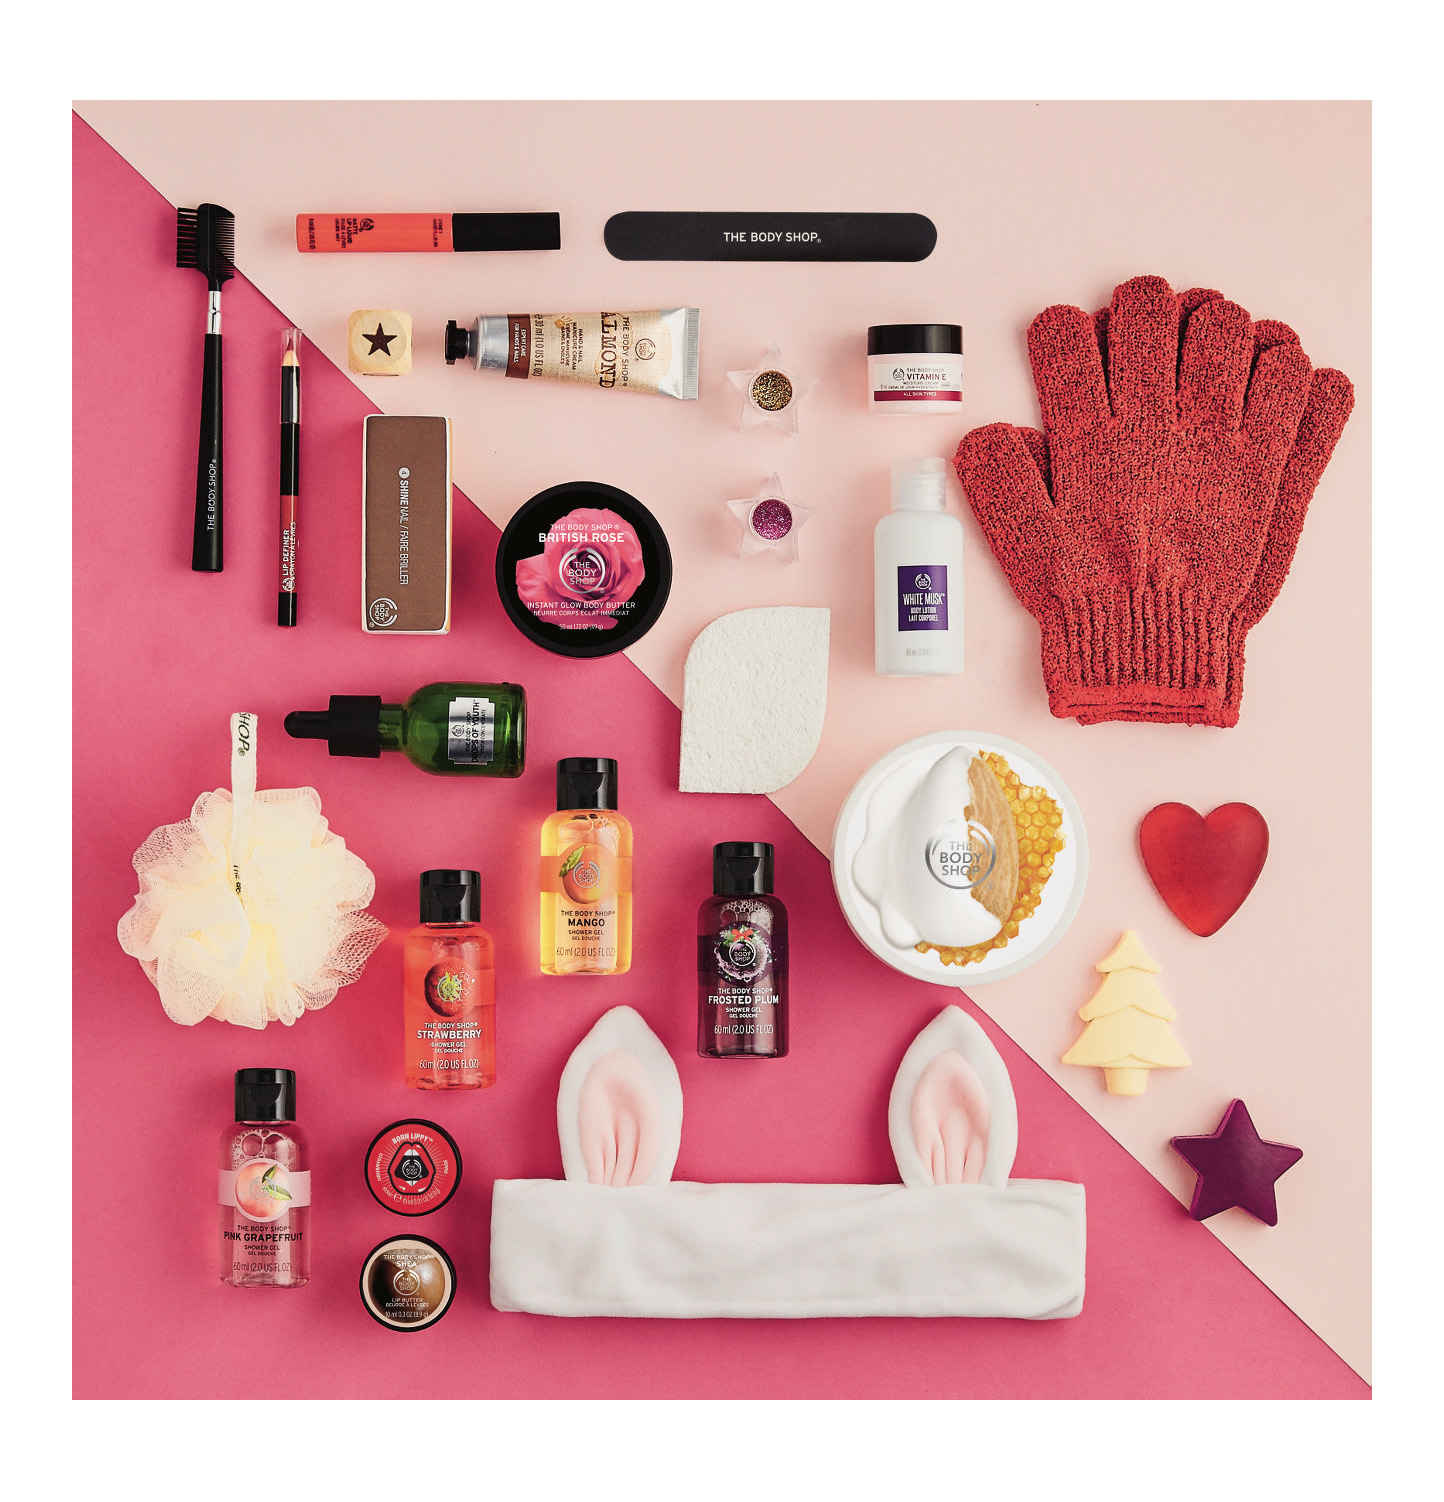 THE BODY SHOP Adventskalender Gift Advent Deluxe Inhalt